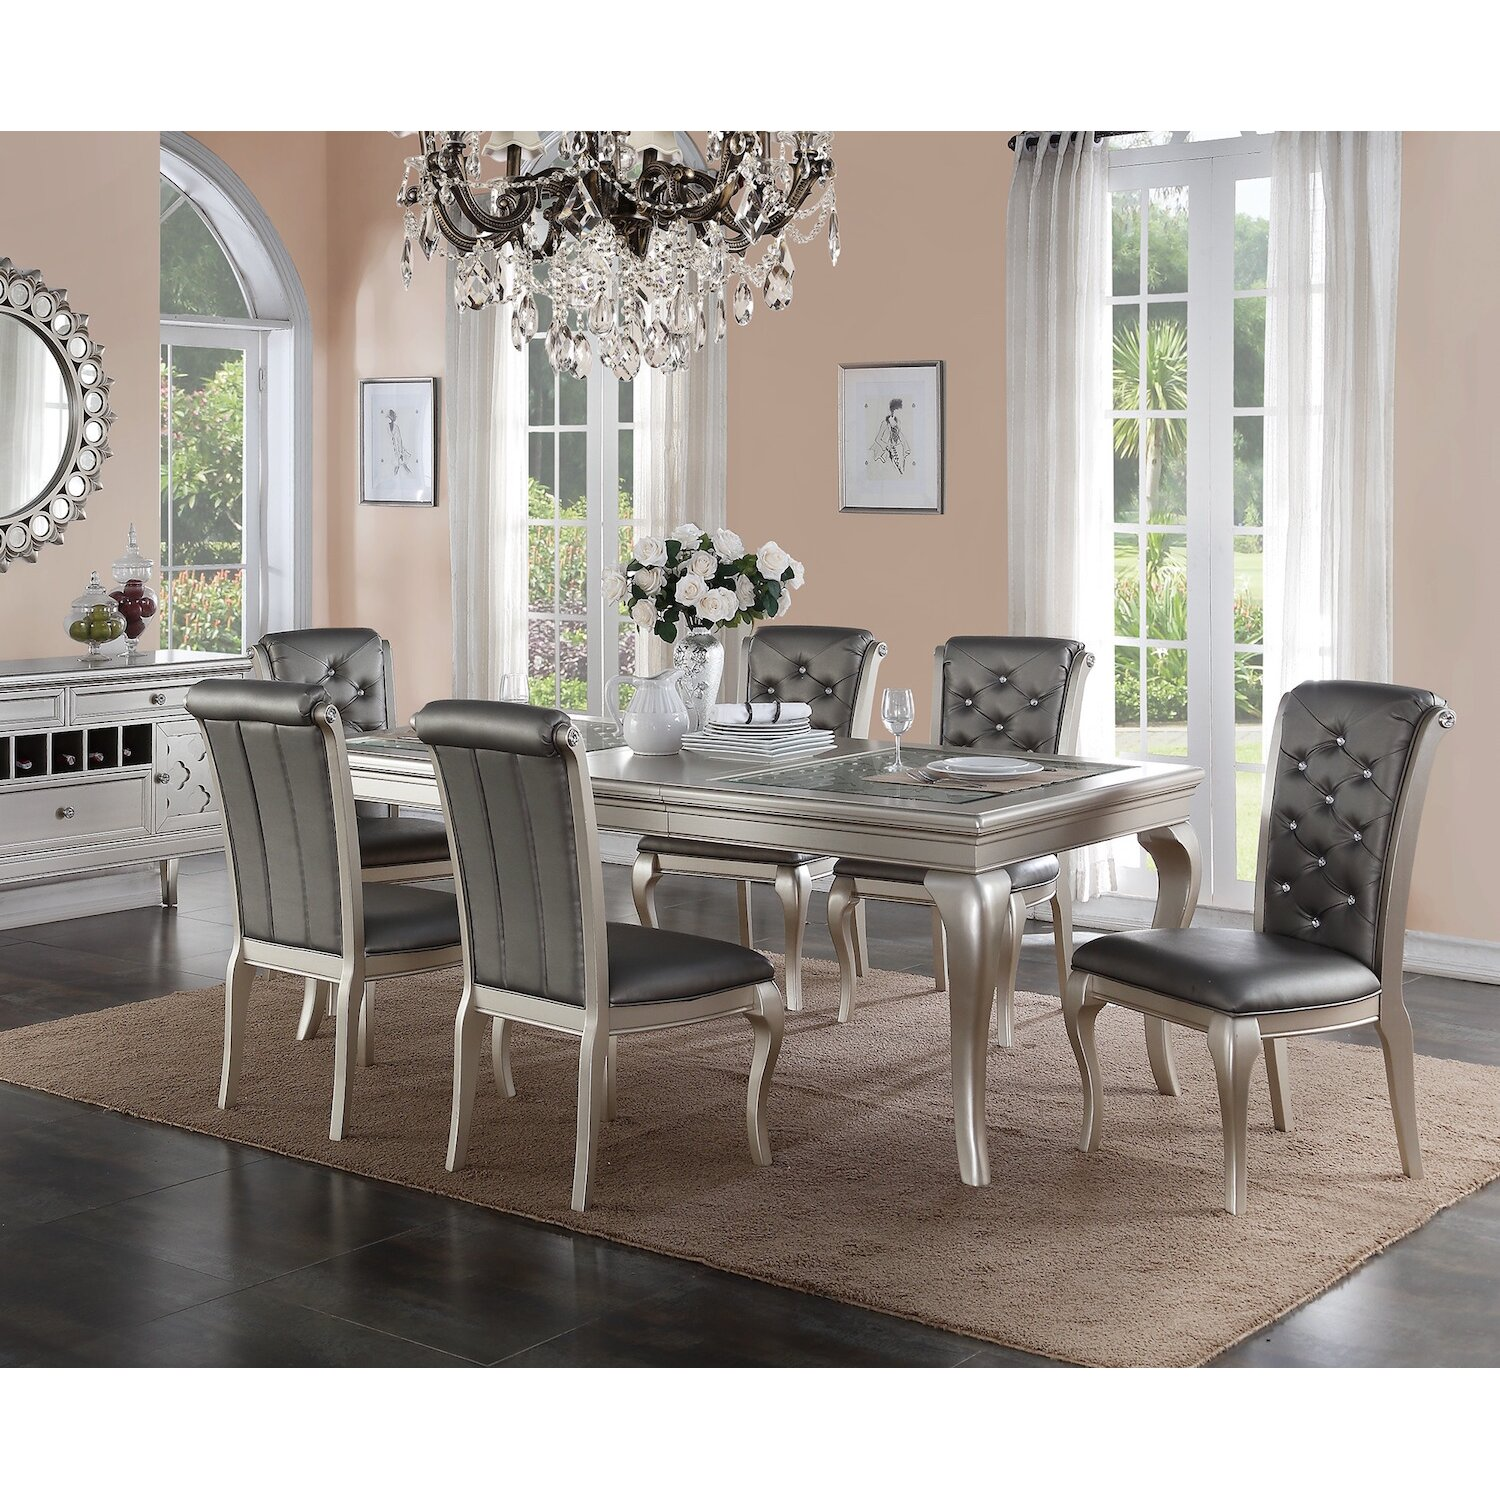 7 Piece Dining Set ~ Infini furnishings adele piece dining set reviews